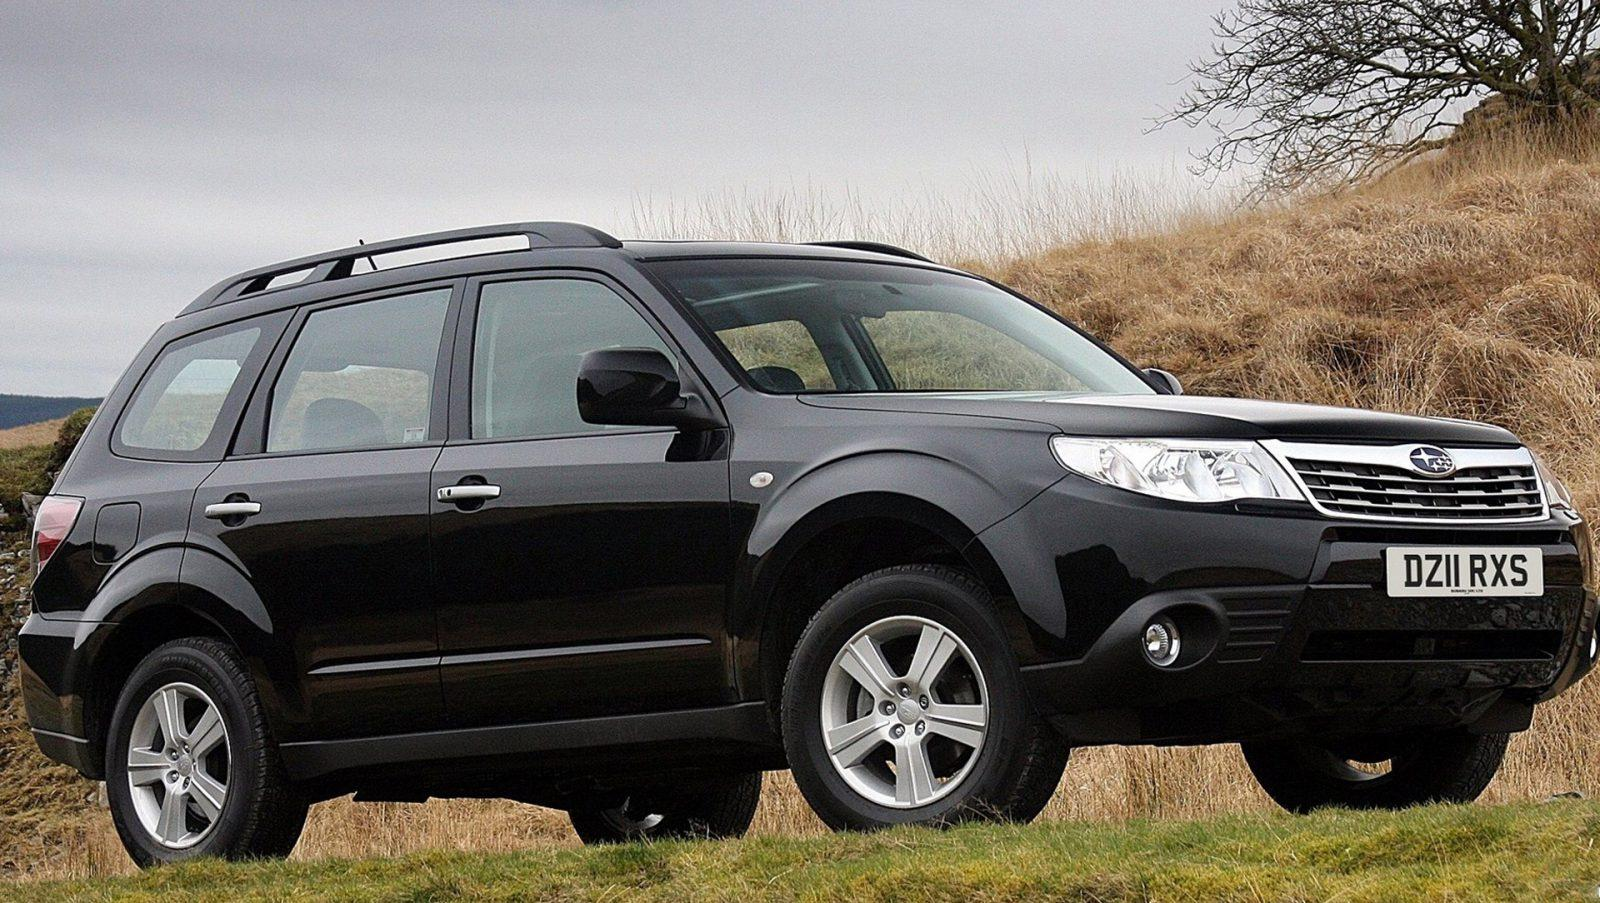 Subaru forester 2008 review a compatible car for every for Subaru forester paint job cost